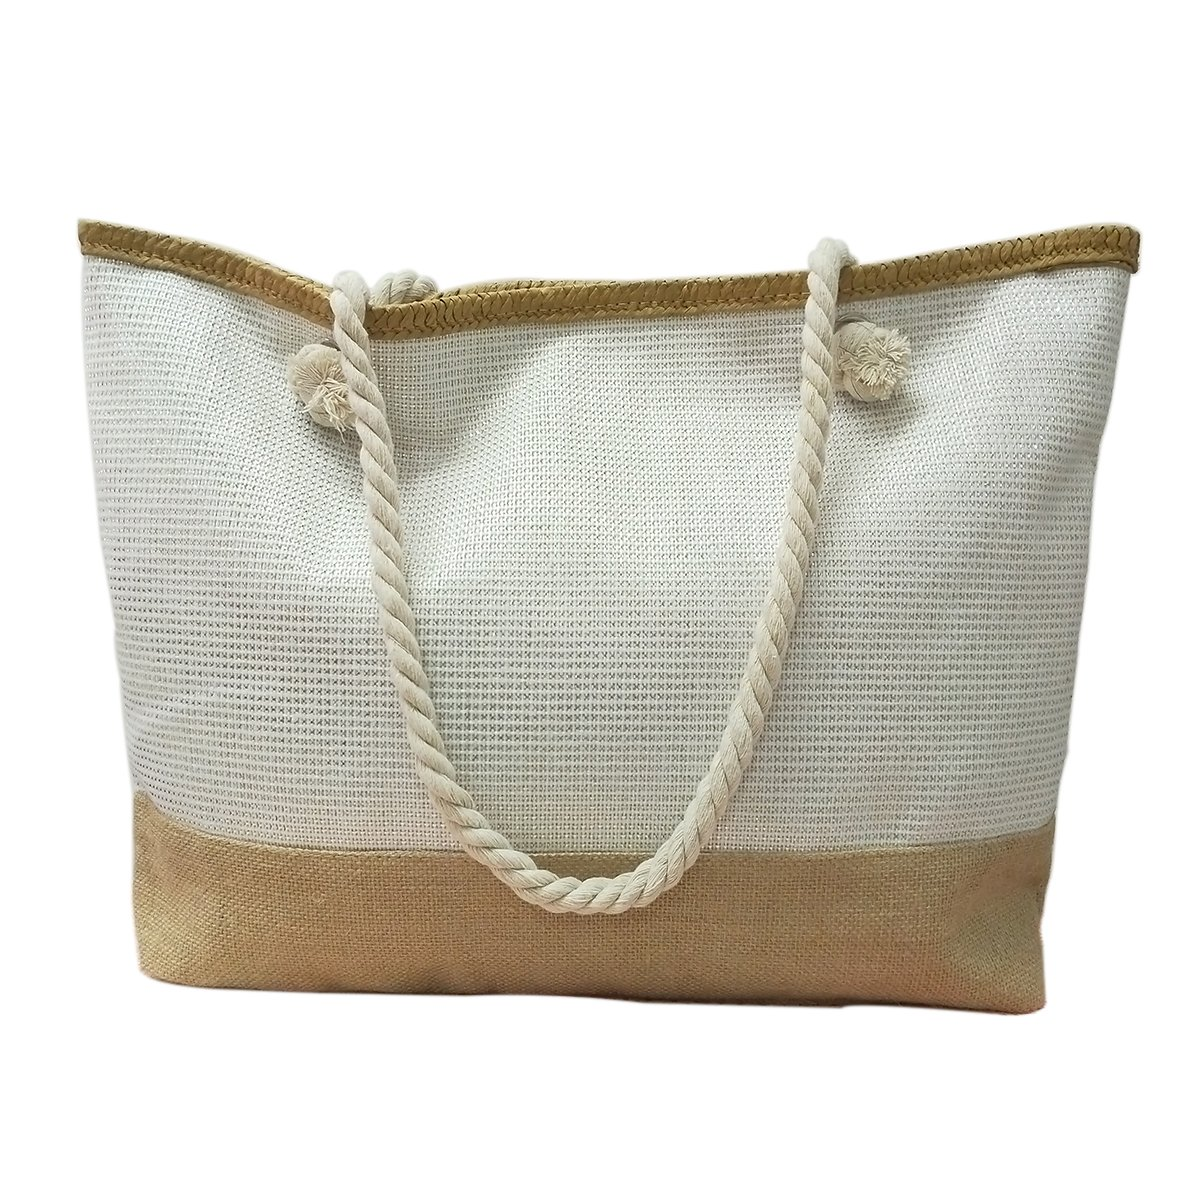 We We Oversize 20''(W) x 16'' (L) x 5''(H) Beach Bag Waterproof Canvas Tote Straw Bag with a Pouch (Style 10)